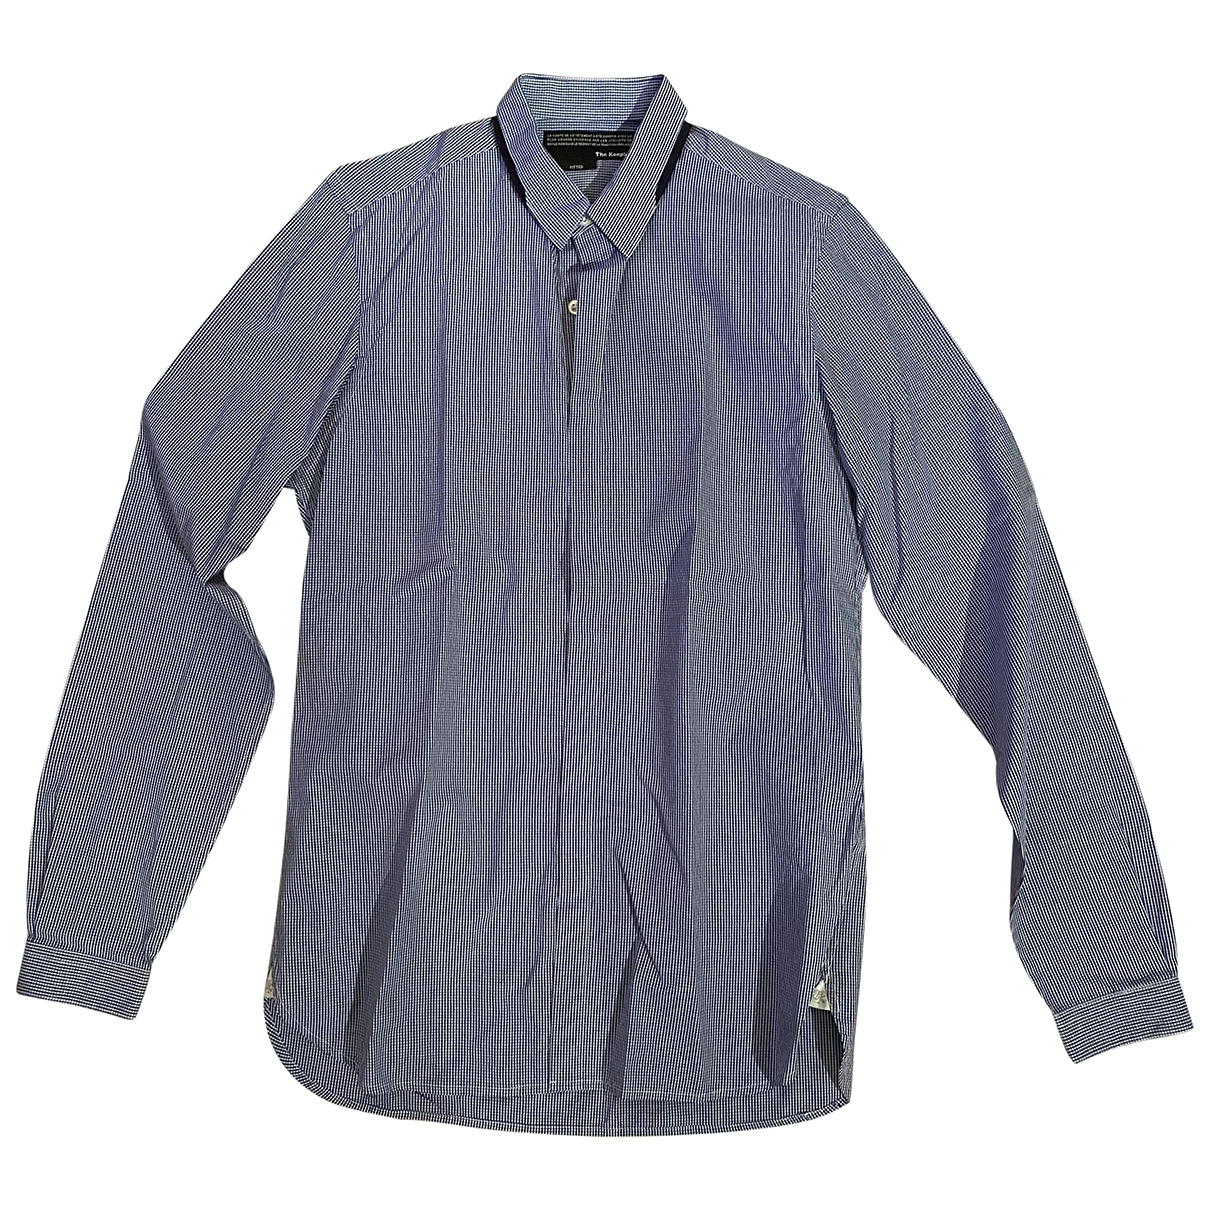 The Kooples \N Blue Cotton Shirts for Men S International